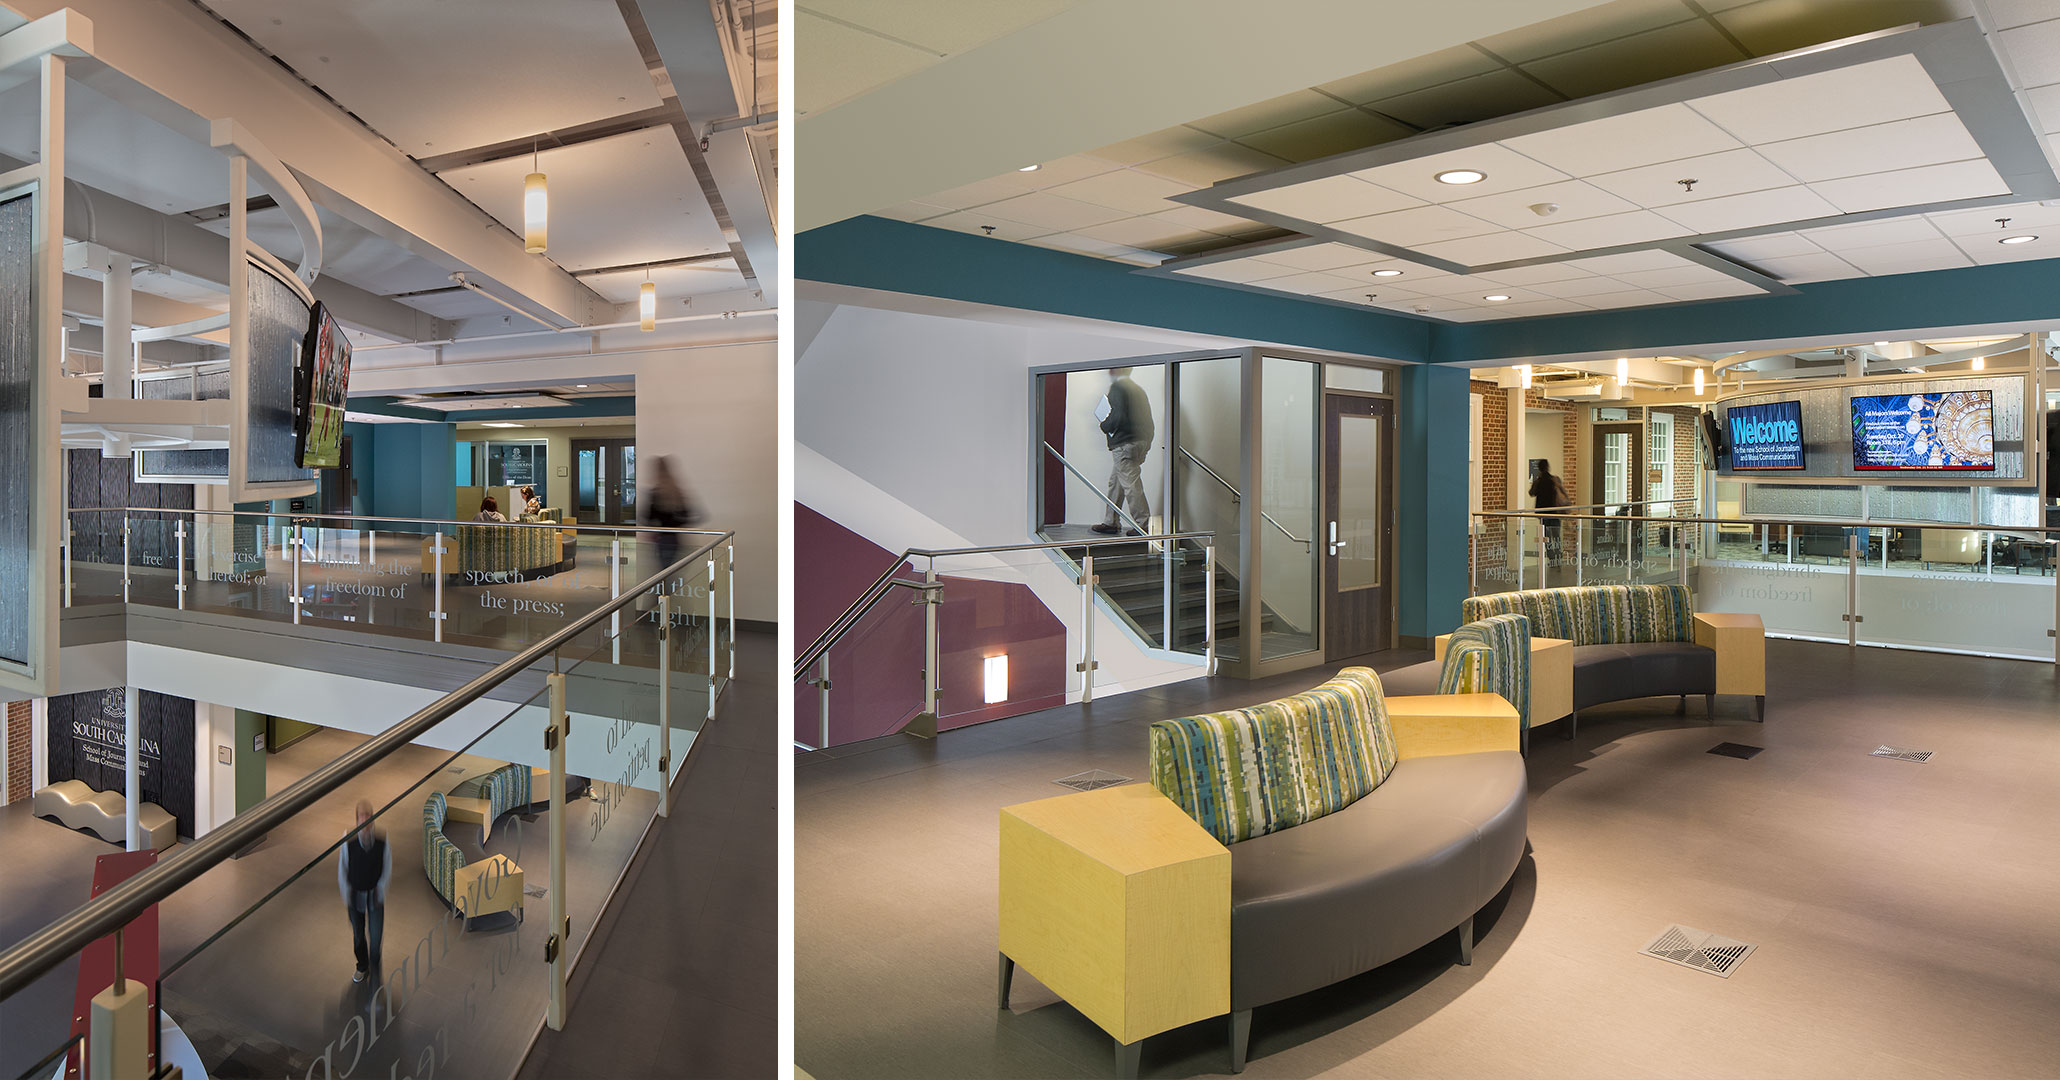 UofSC worked with Boudreaux architects to improve the interior spaces for students at the School of Journalism.